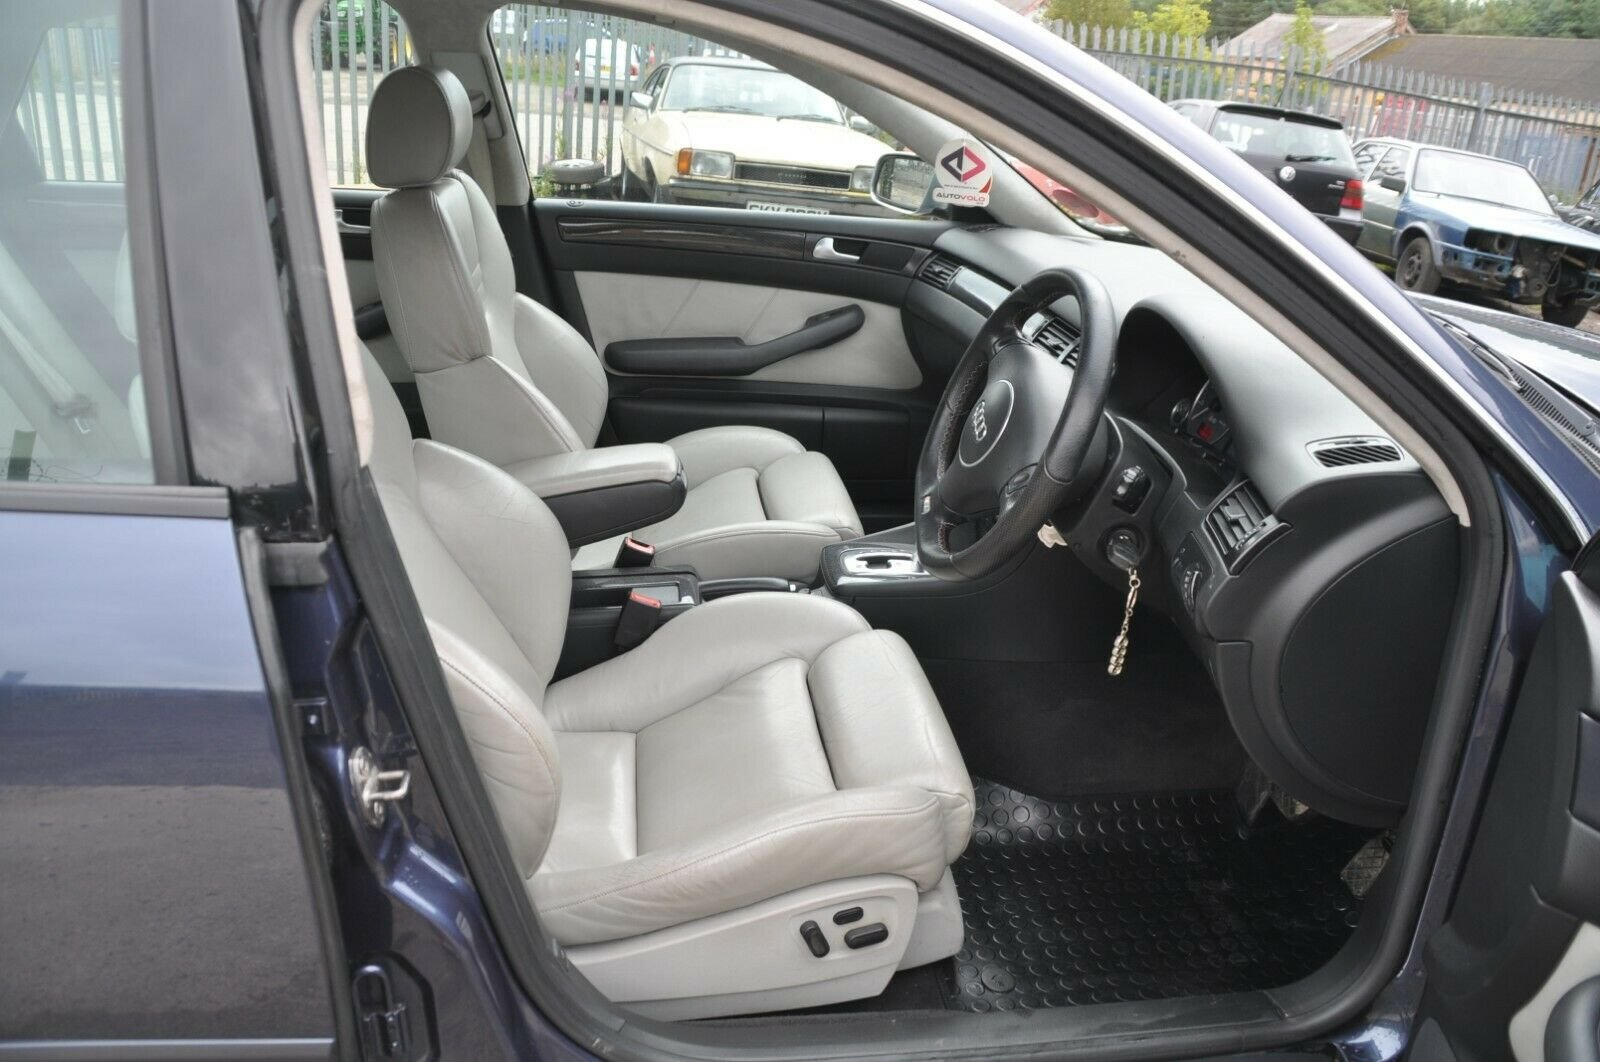 2002 AUDI S6 LOW MILES LEATHER RECAROS BOSE STAINLESS EXHAUSAUST For Sale (picture 3 of 6)